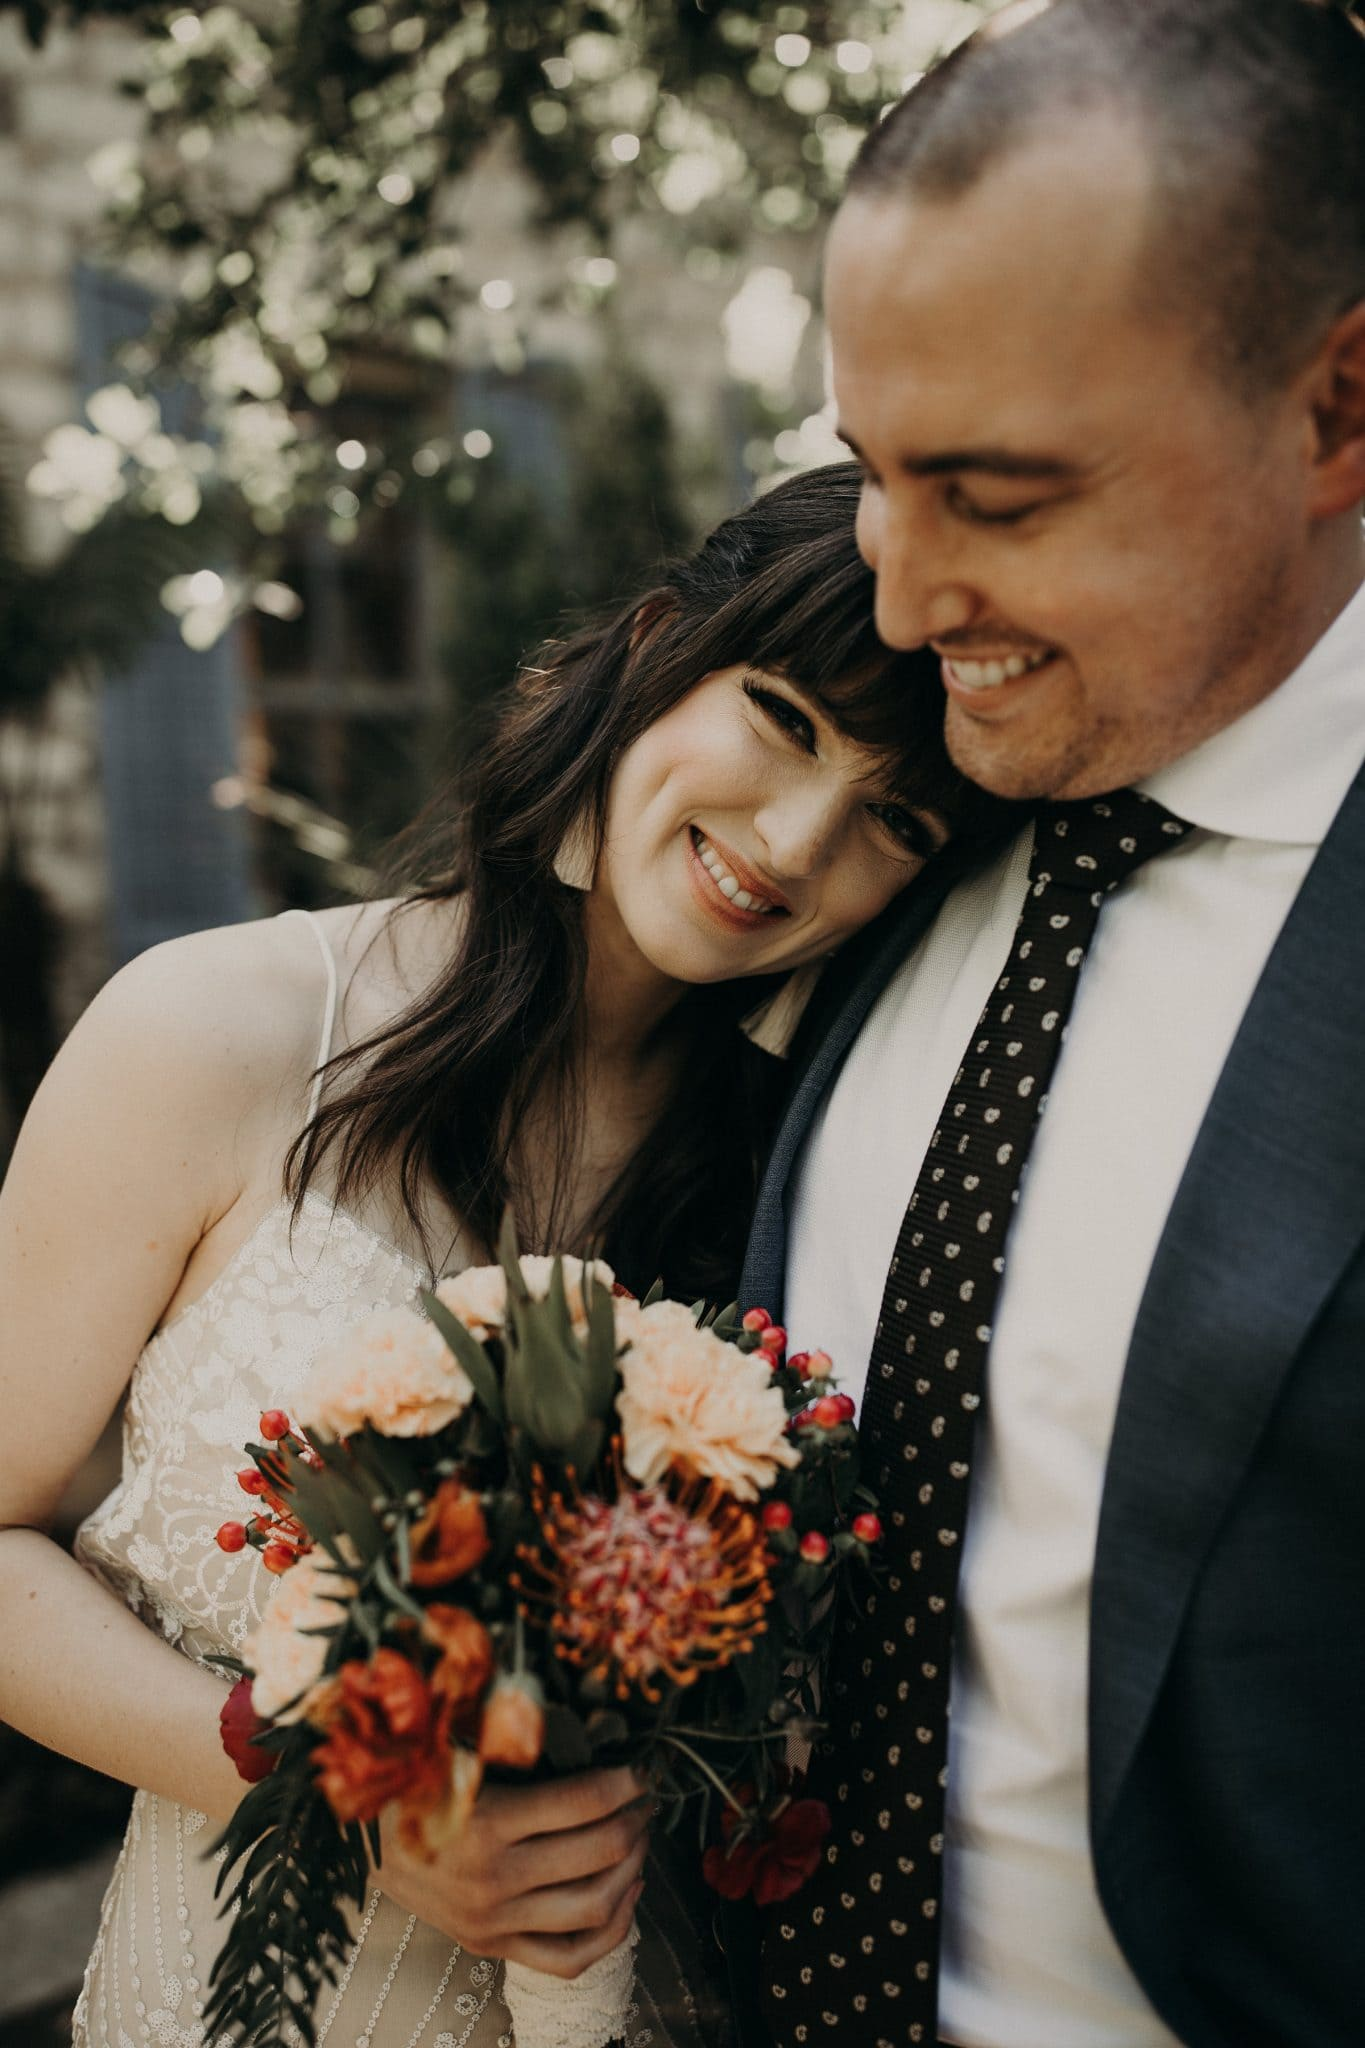 Bride smiling and holding her bouquet as she leans against the right side of the grooms chest and he smiles down at her in Austin, Texas. Photograph by Austin, Texas wedding photographer Nikk Nguyen.